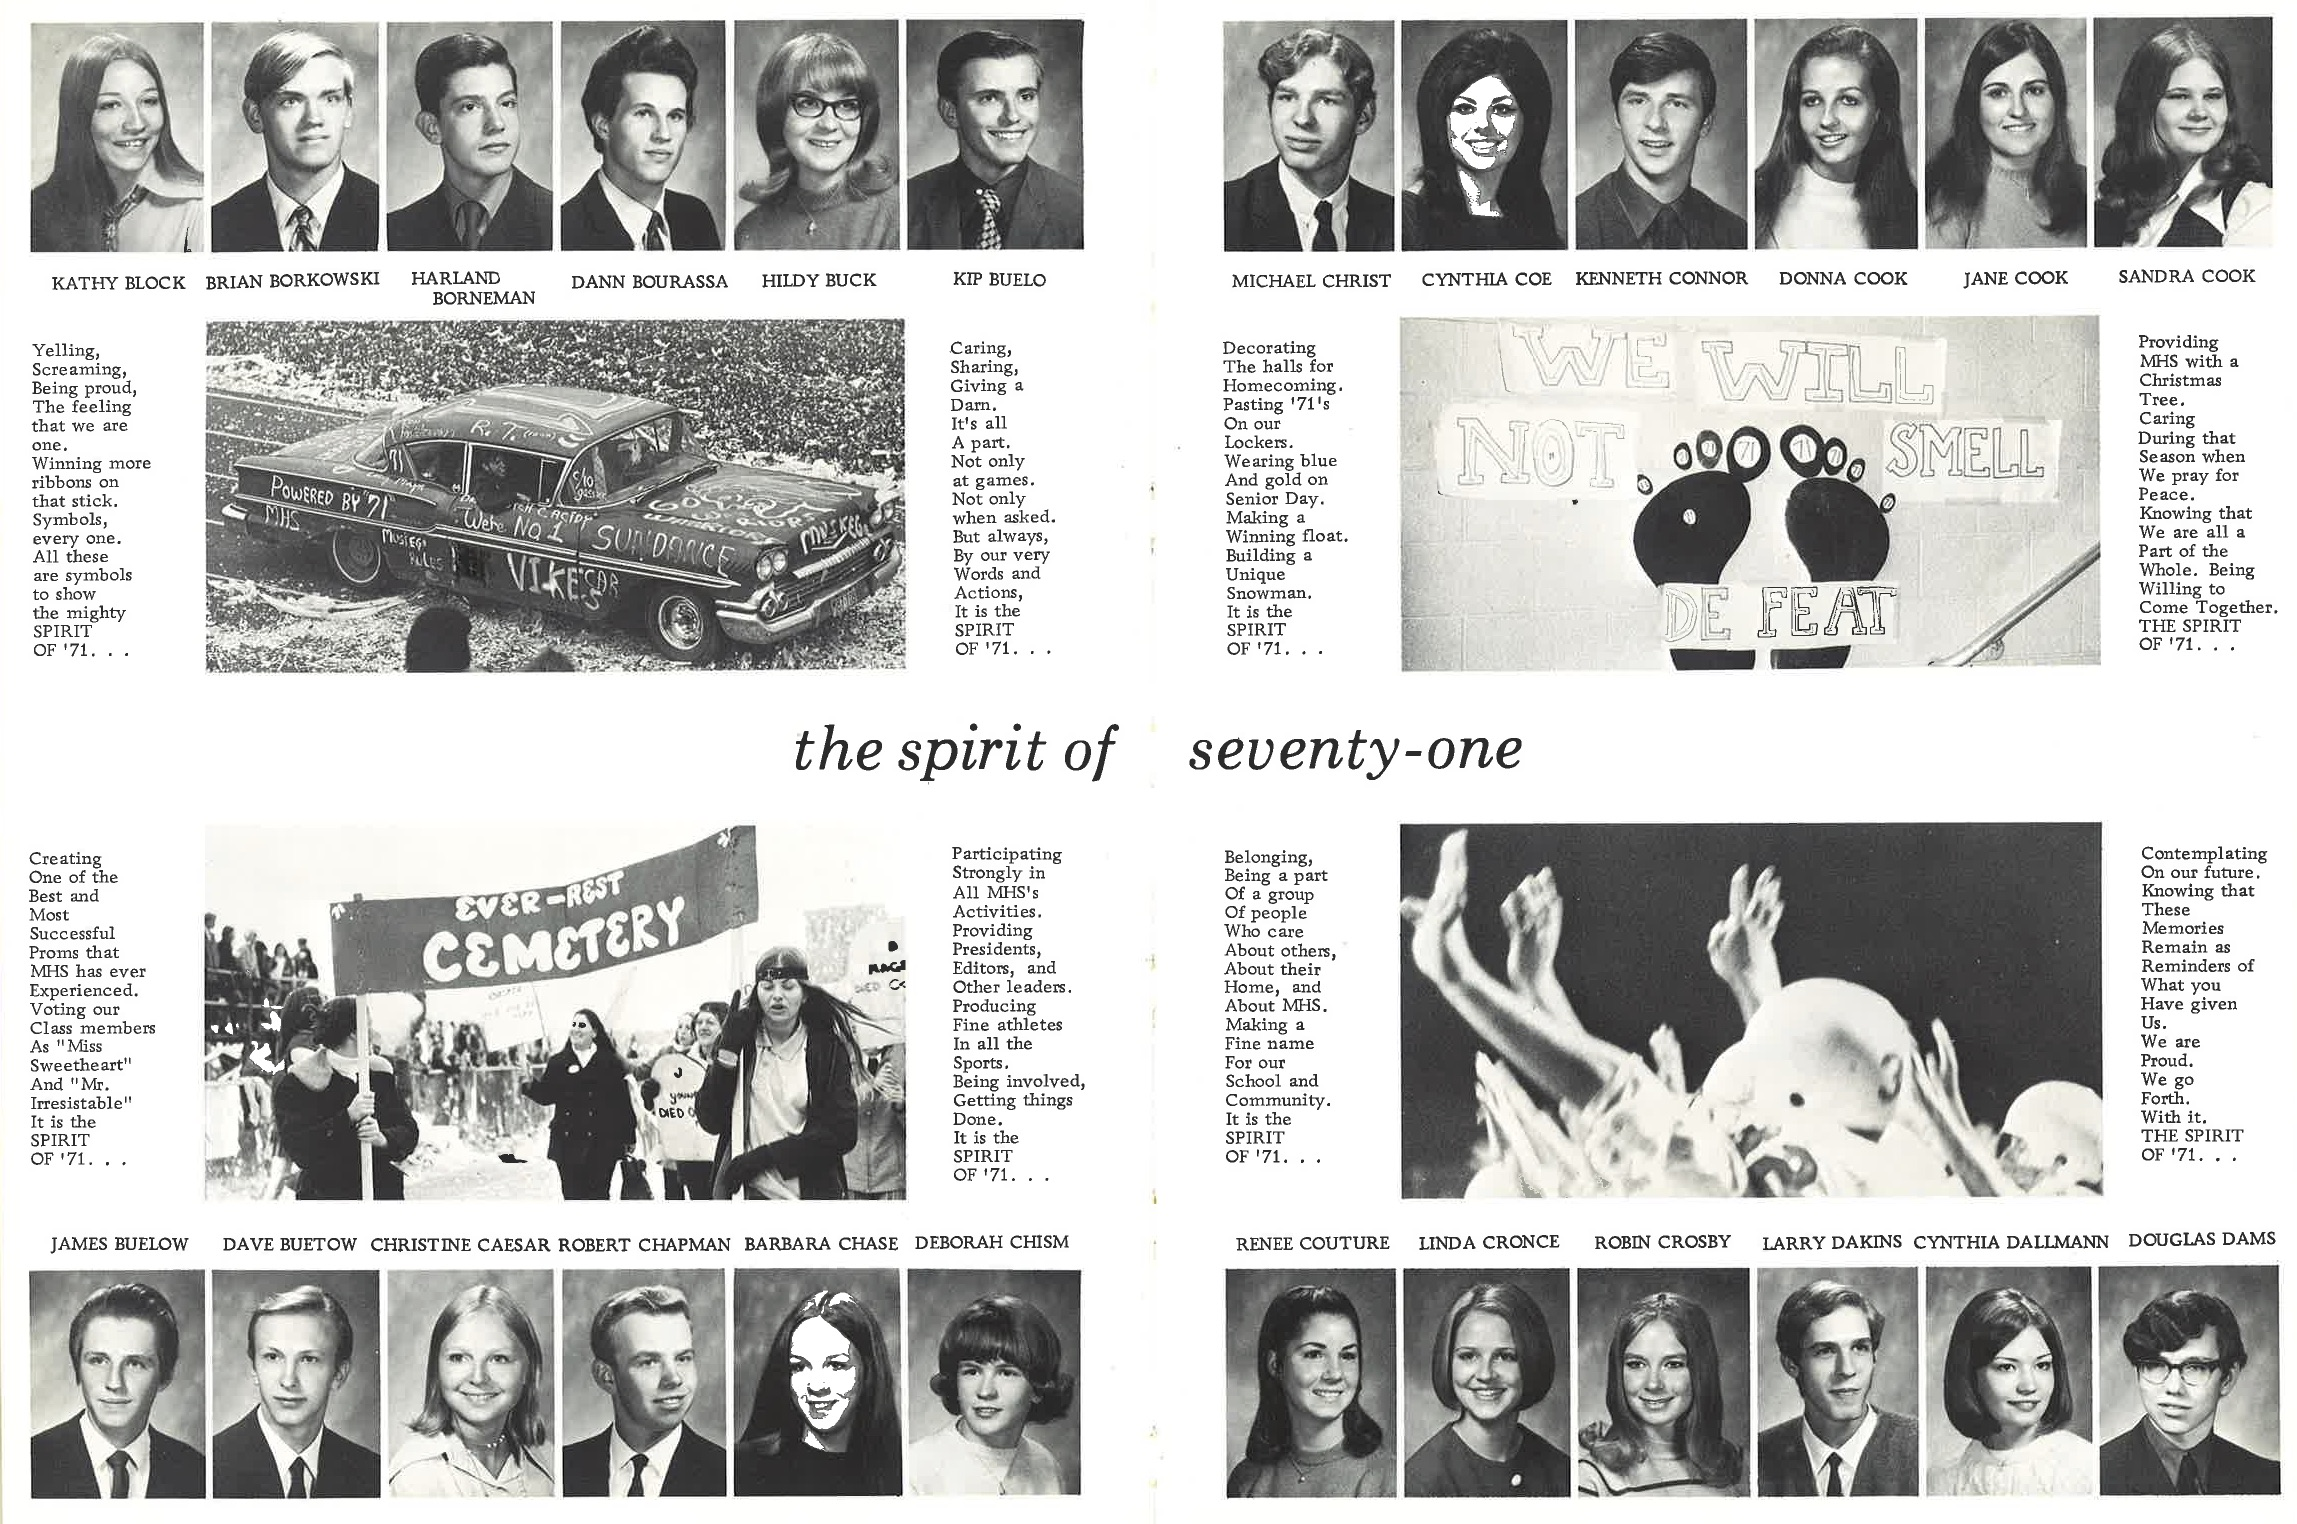 1971_Yearbook_122-123.jpg